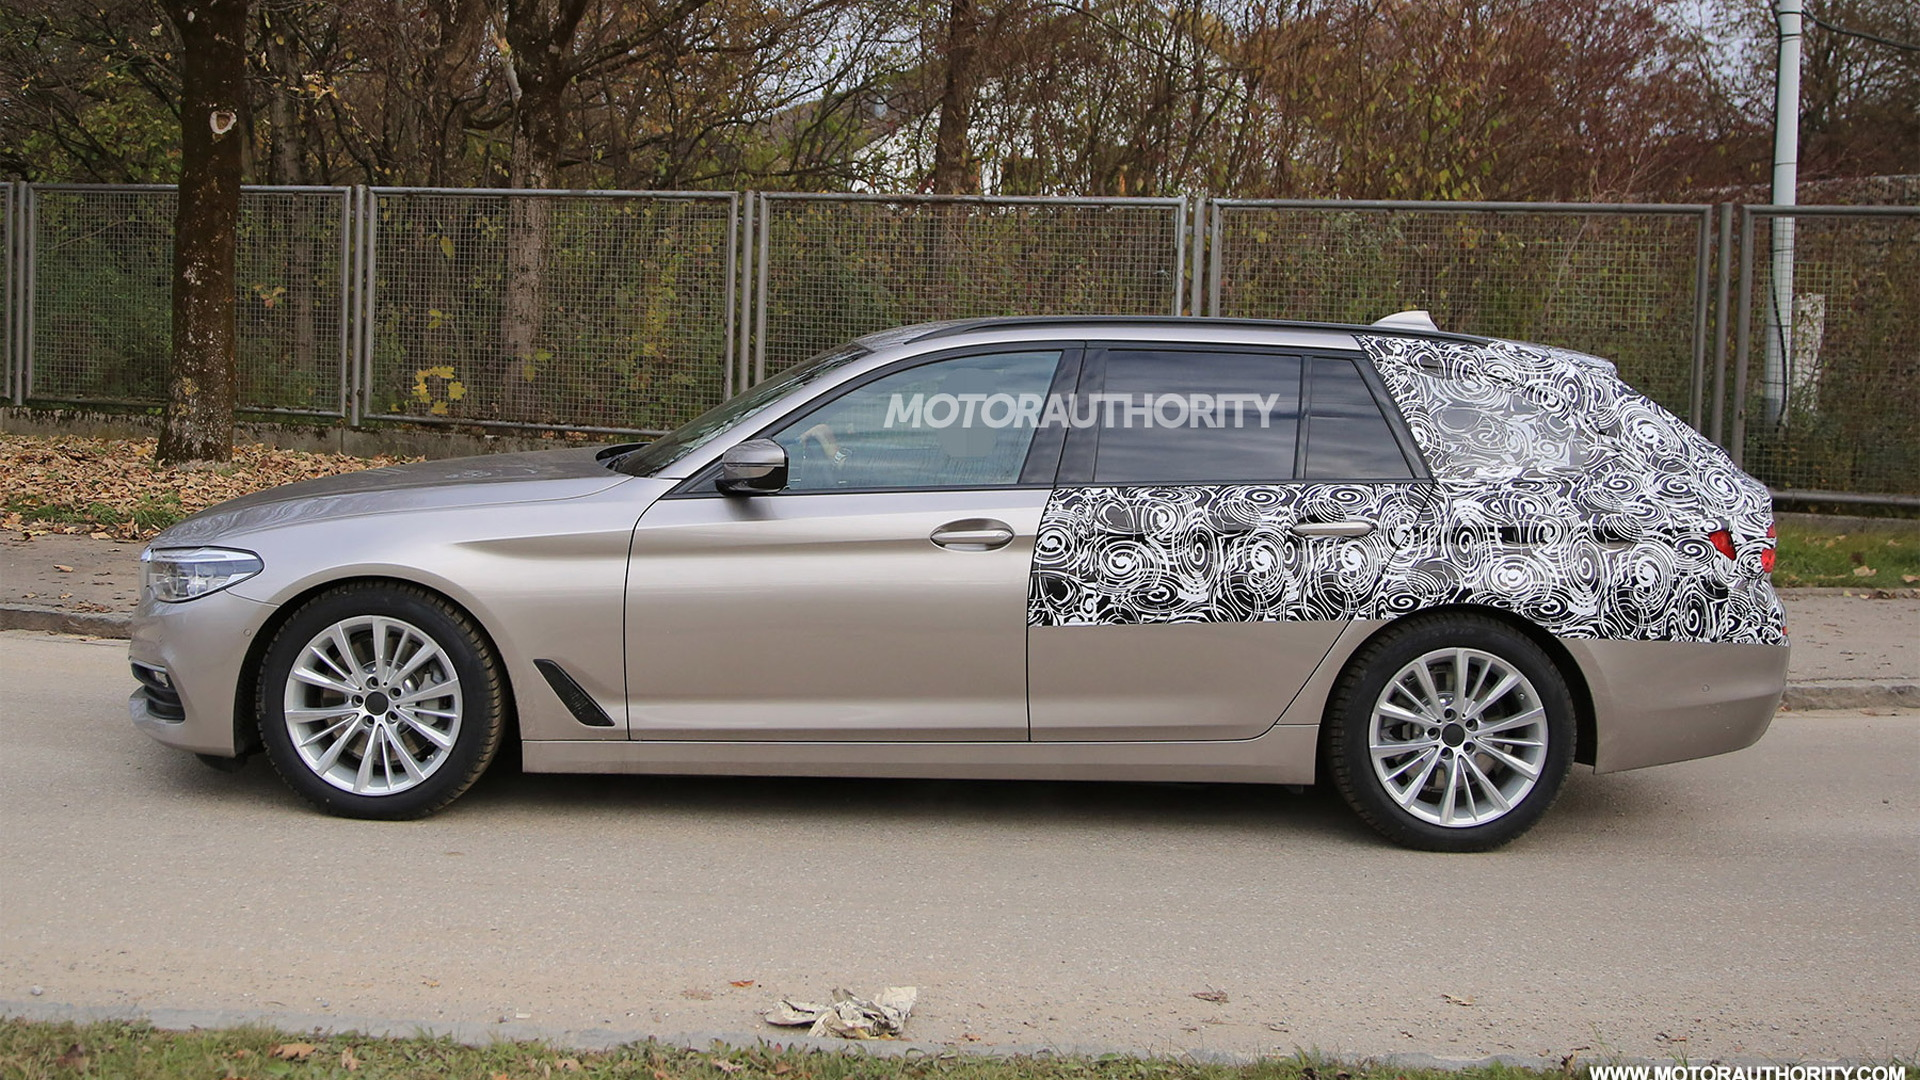 2017 BMW 5-Series Sports Wagon (Touring) spy shots - Image via S. Baldauf/SB-Medien